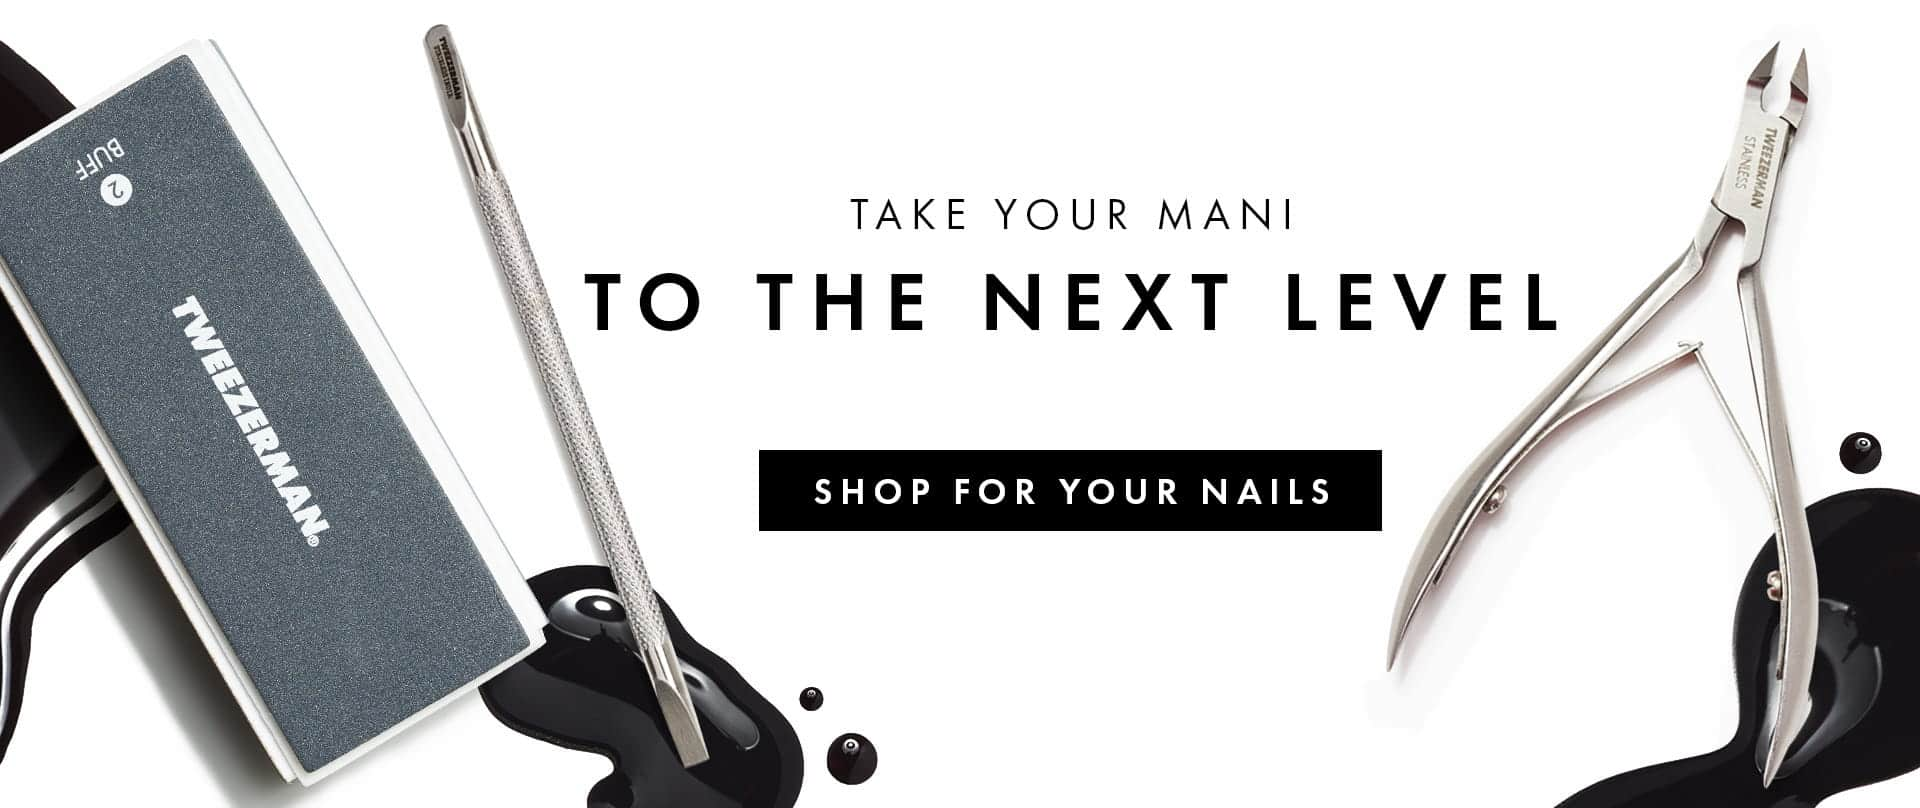 Tweezerman's high-quality, professional manicure tools including the Smooth Nail Buffer Blocks, Cuticle Pushy and Rockhard Cuticle Nipper